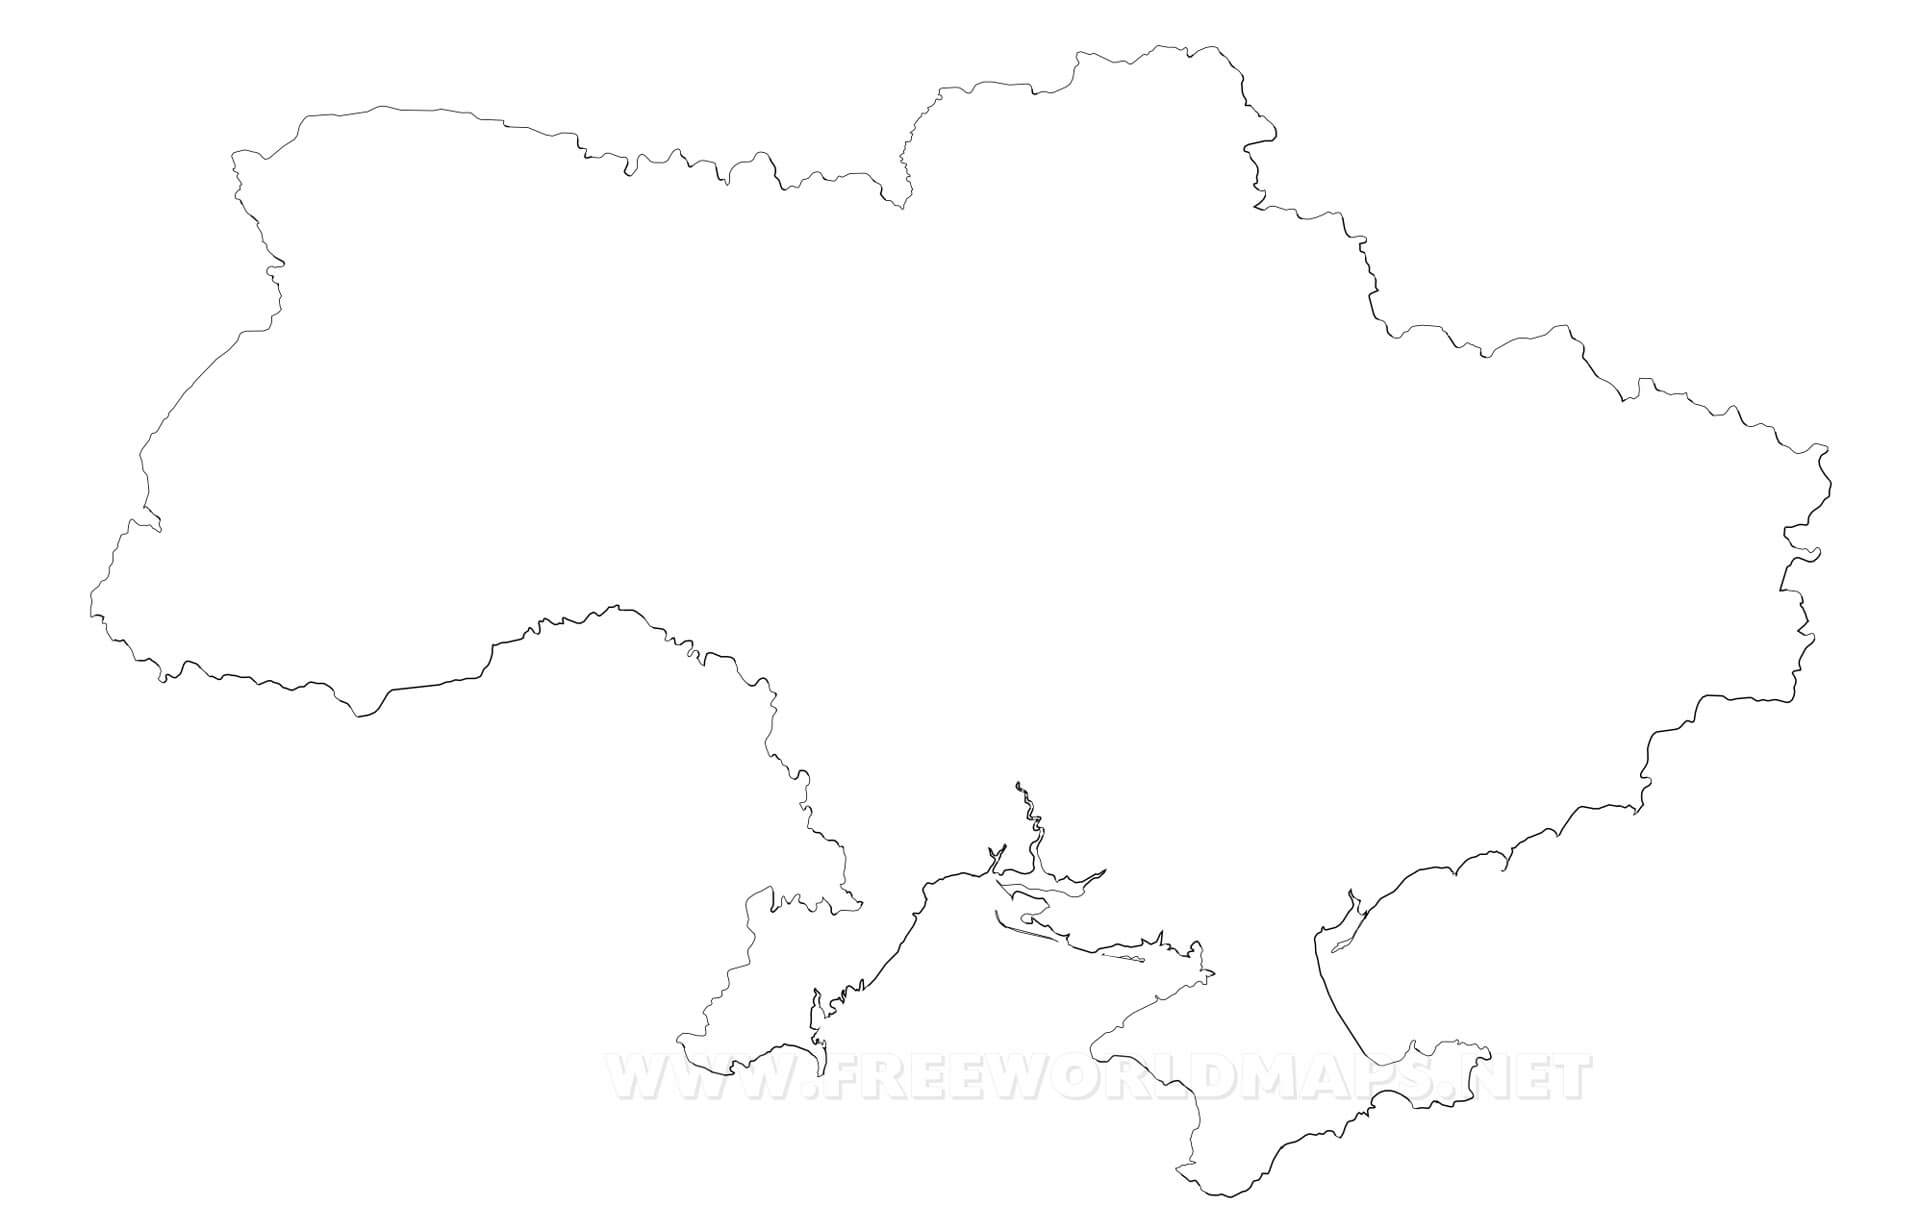 Ukraine Political Map on blank map of western sahara, blank map of moldova, blank map of indian ocean islands, blank map of us virgin islands, blank map of the soviet union, blank map of poland, google maps ukraine, blank map of st. croix, blank map of northeast asia, blank map of austria-hungary, blank map of east mediterranean, blank map of cis, blank map of caucasus region, blank map of the congo, blank map of dubai, blank map of latvia, blank map of the uae, blank map of tortola, europe map kiev ukraine, blank map of indiana,